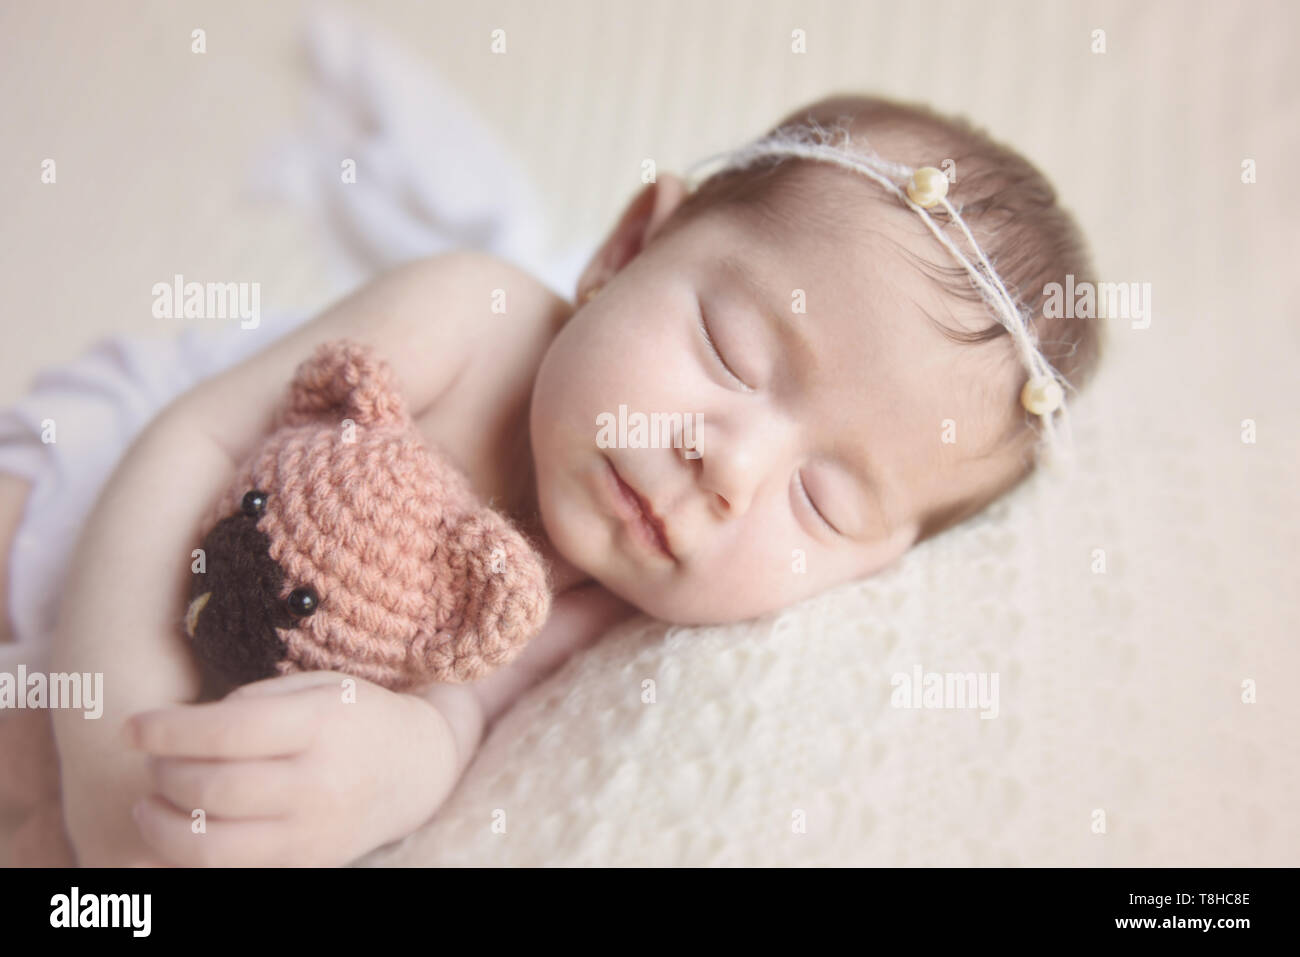 Newborn girl slepping holding a teddy bear - Stock Image